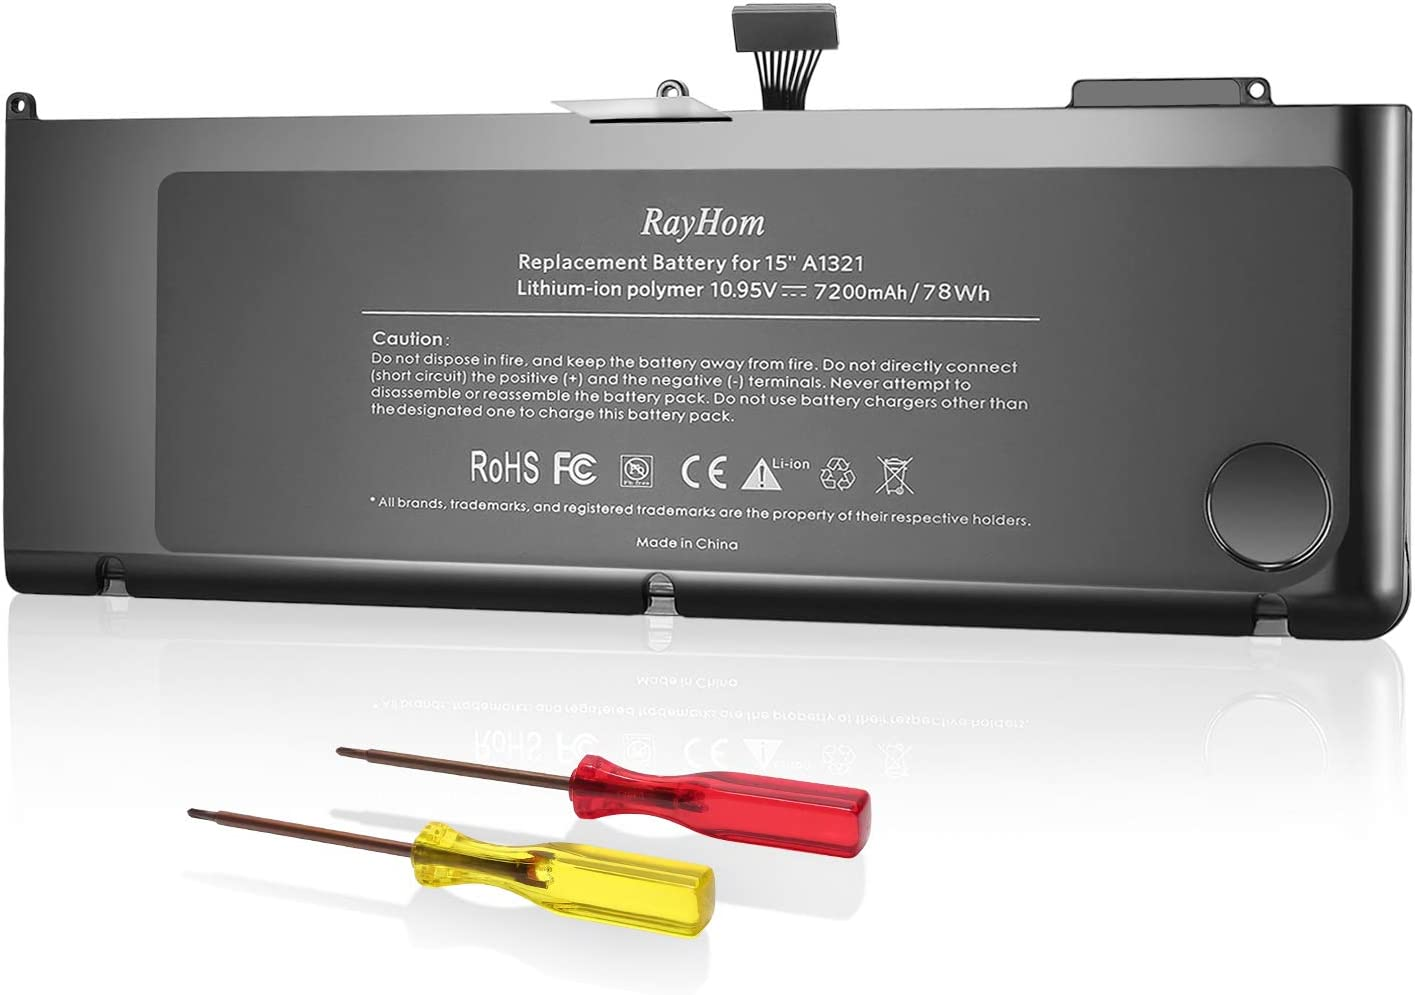 RayHom A1321 A1286 Battery for Mid 2009 Early 2010 Late 2010 MacBook Pro 15 Inch